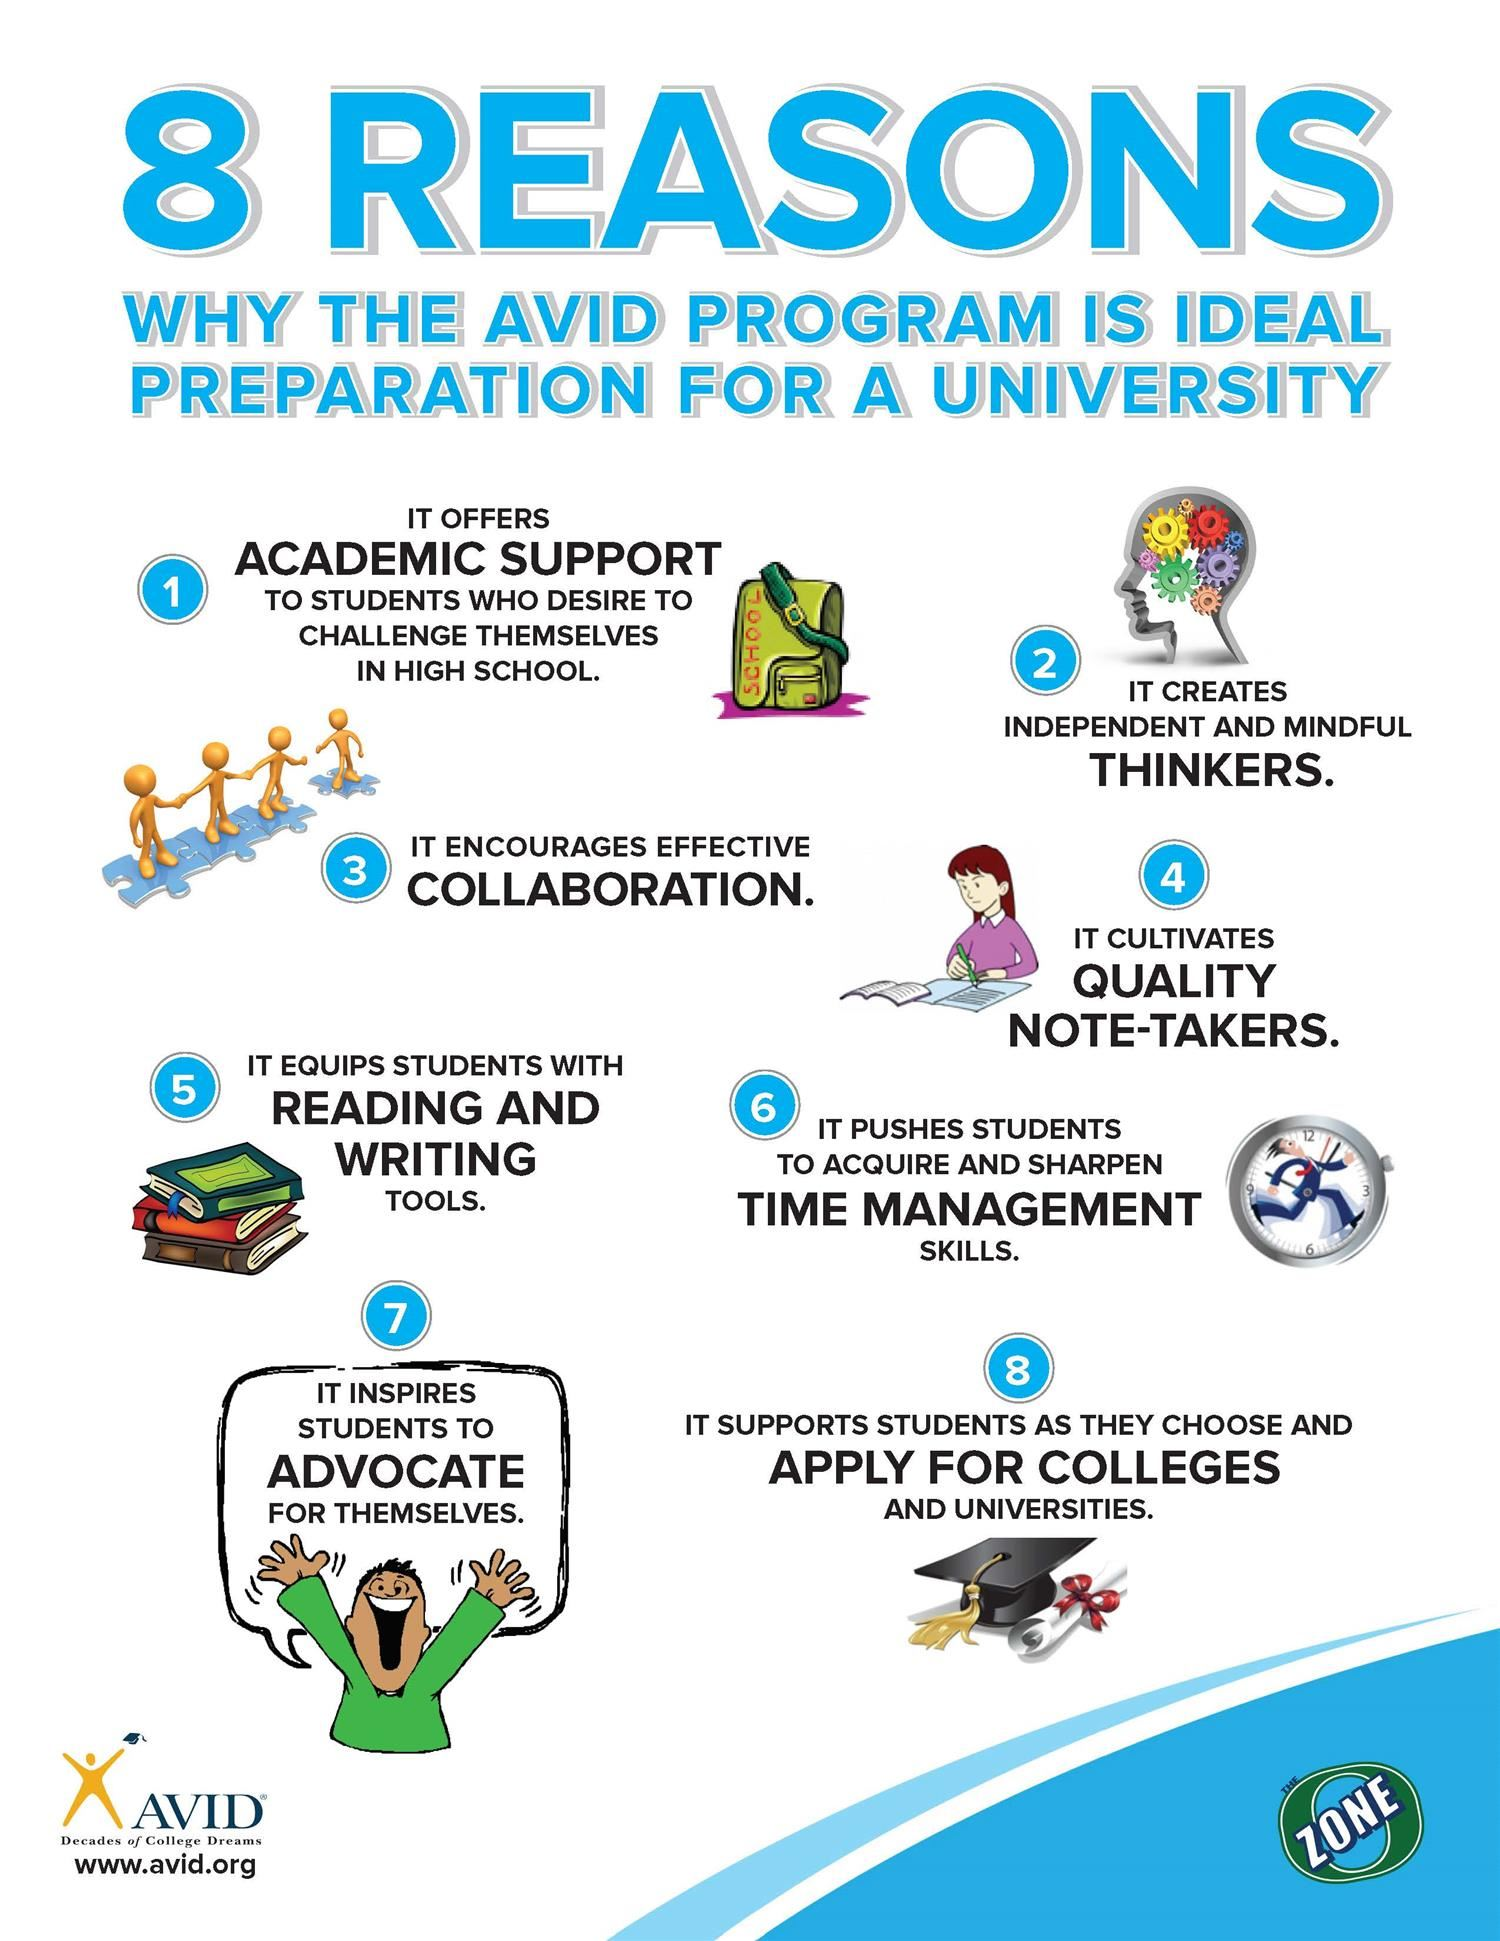 image of AVID poster